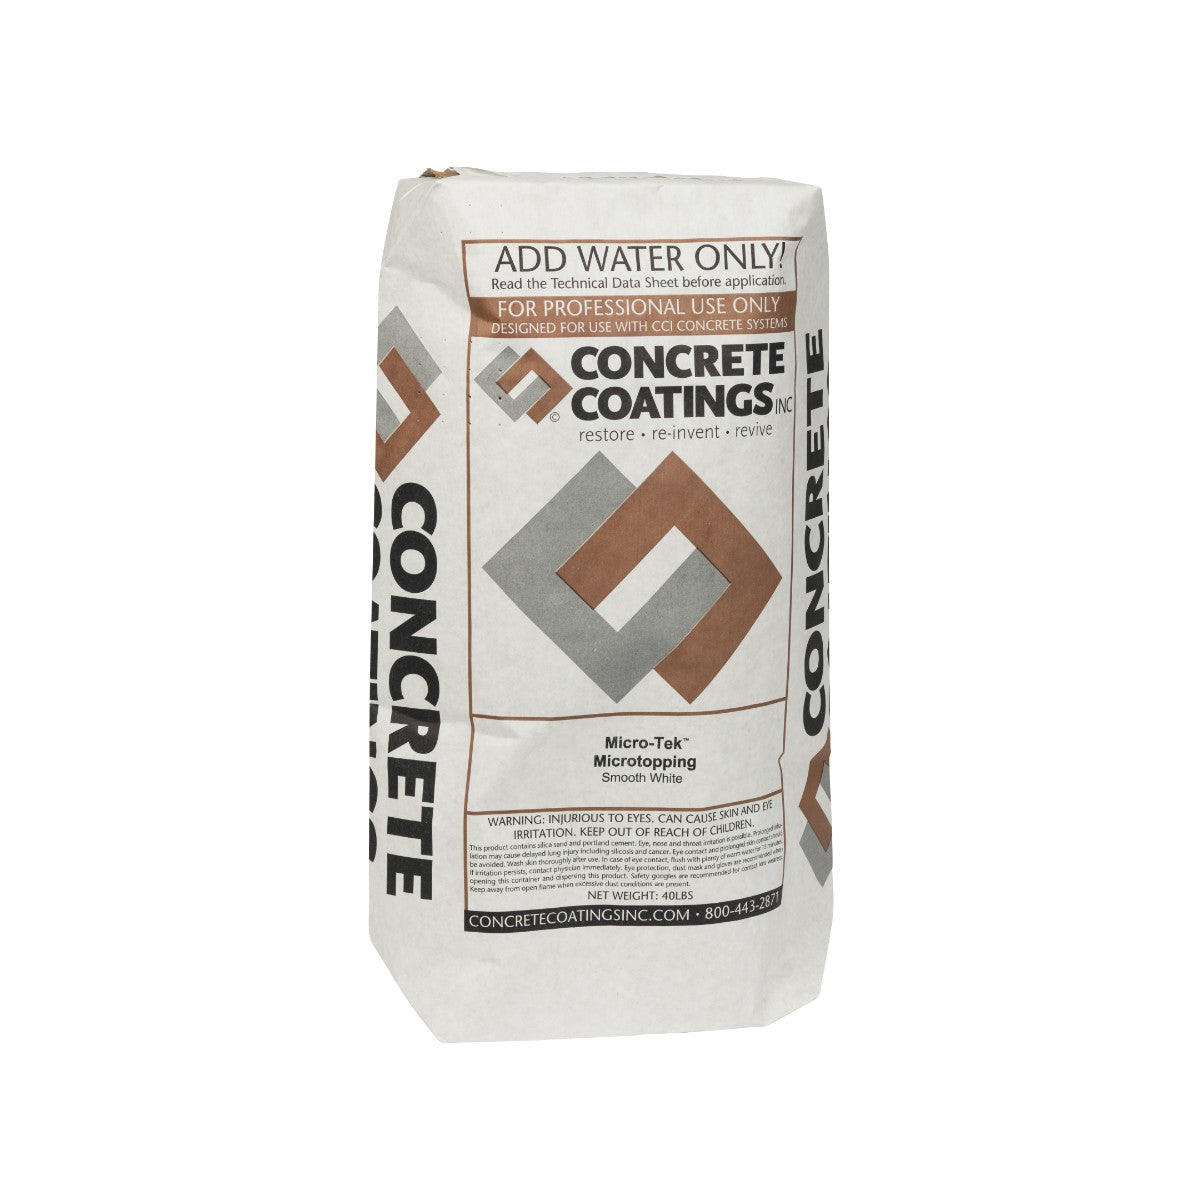 Concrete Coatings Microtek Smooth-Grade White Concrete Overlay - 40 lb